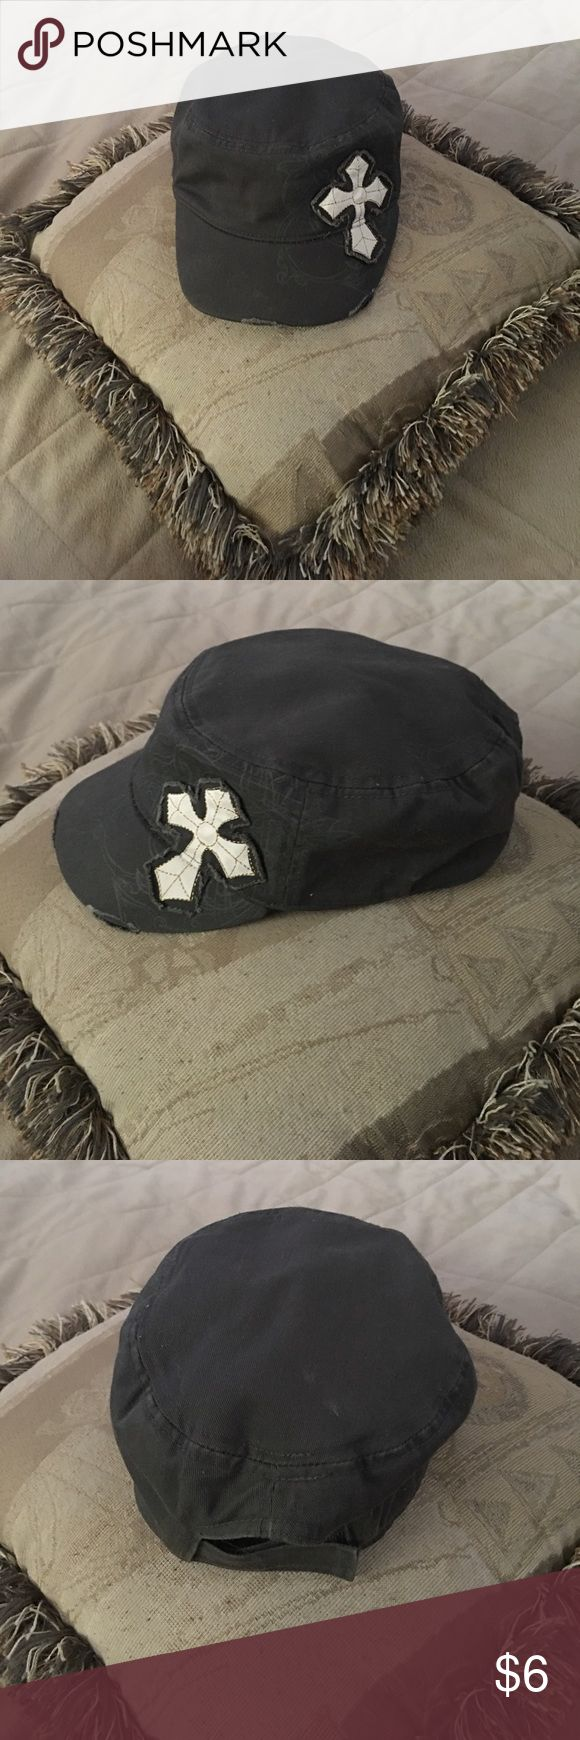 Distressed Cadet Hat With Cross - New 👀 Distressed Cadet Hat With Cross - New 👀 🎓🎩👒👑⛑ purchased @ Lifeway Christian store. I just have to many hats and don't wear them all. 😊 Lifeway  Accessories Hats